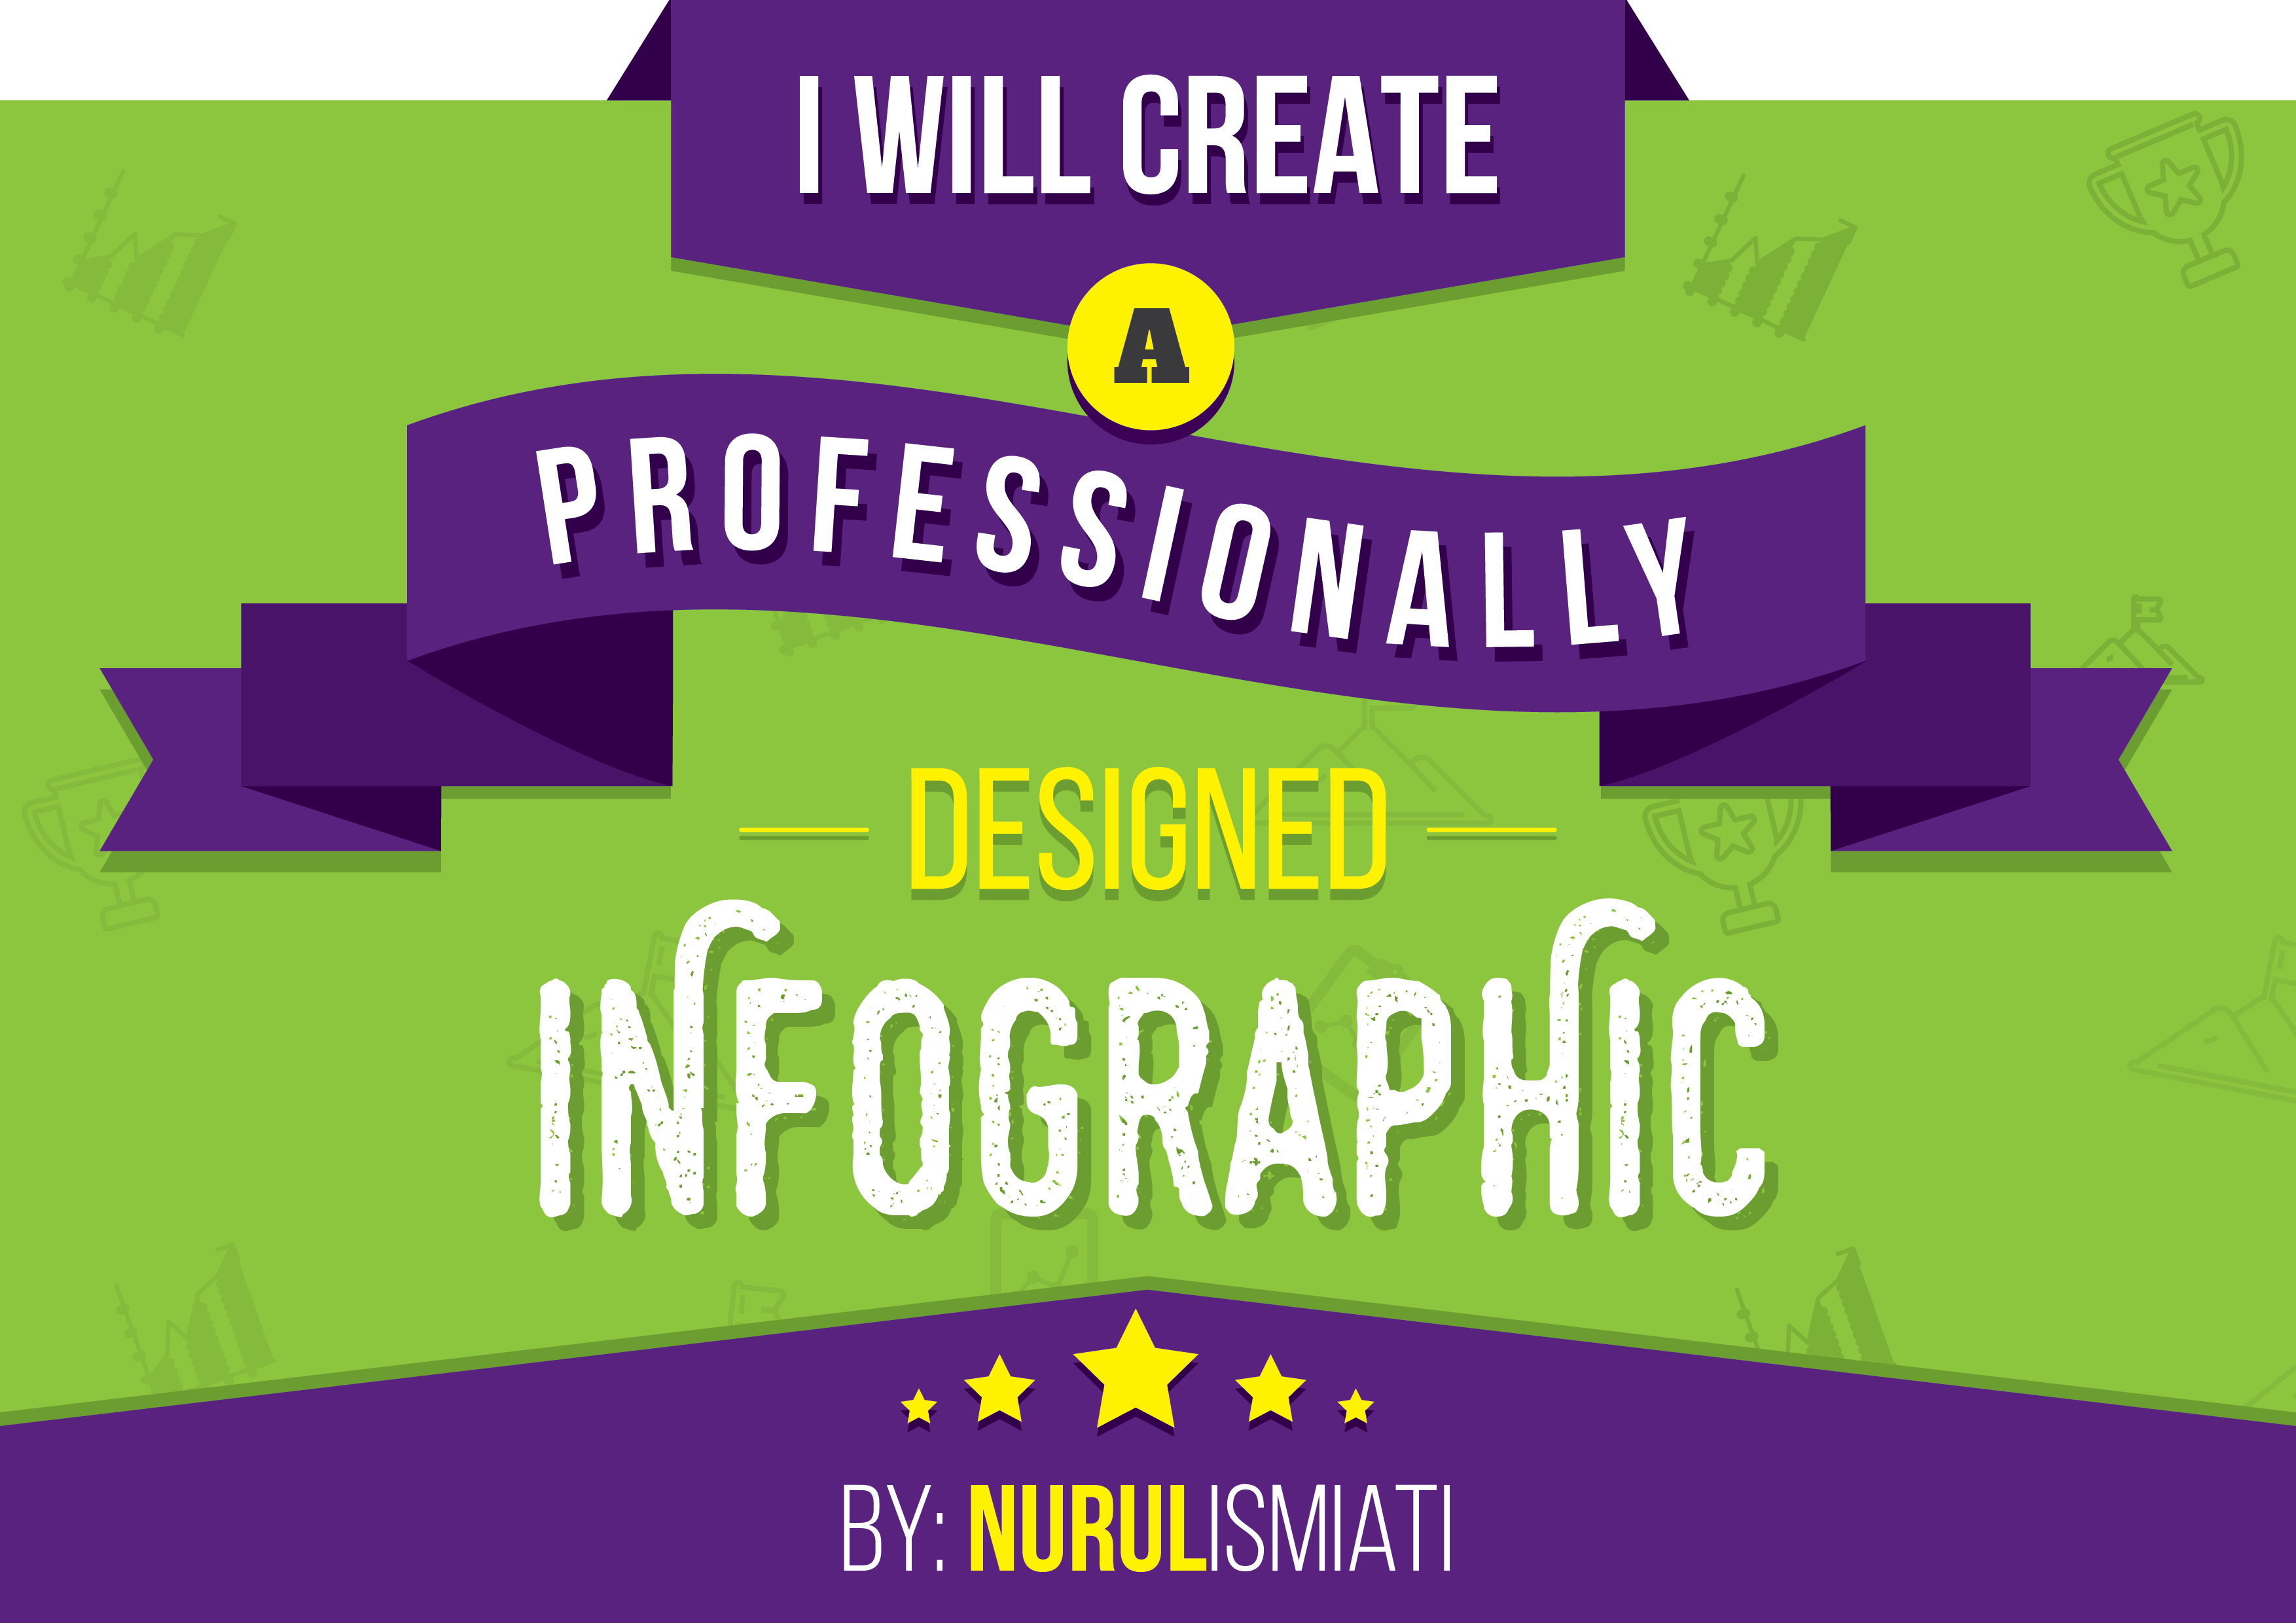 create a professionally designed Infographic